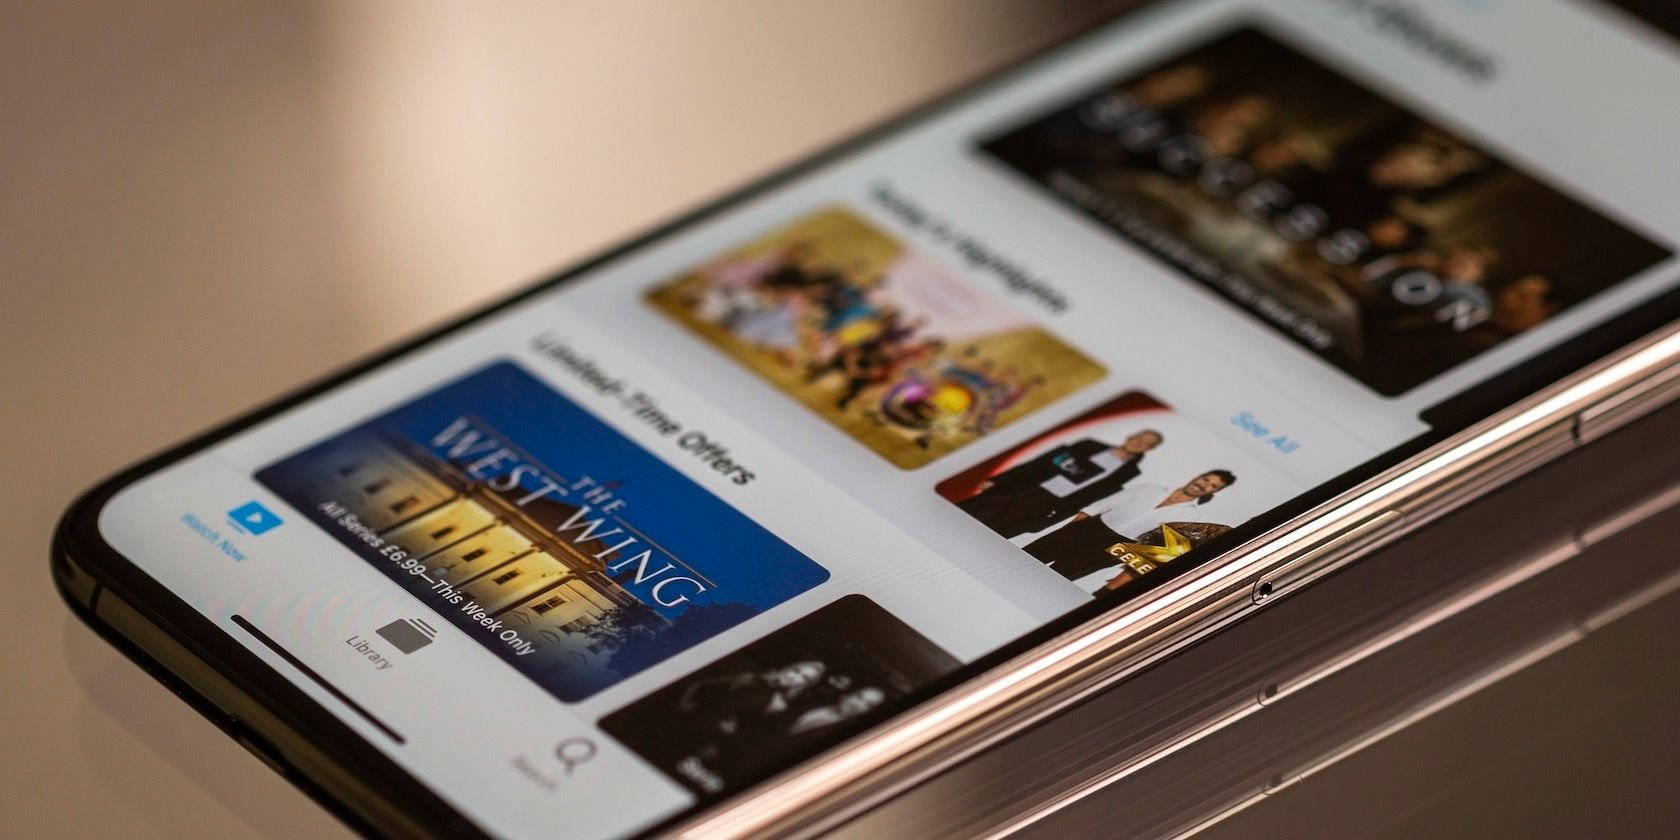 The 10 Best iPhone Apps to Track Movies and TV Shows